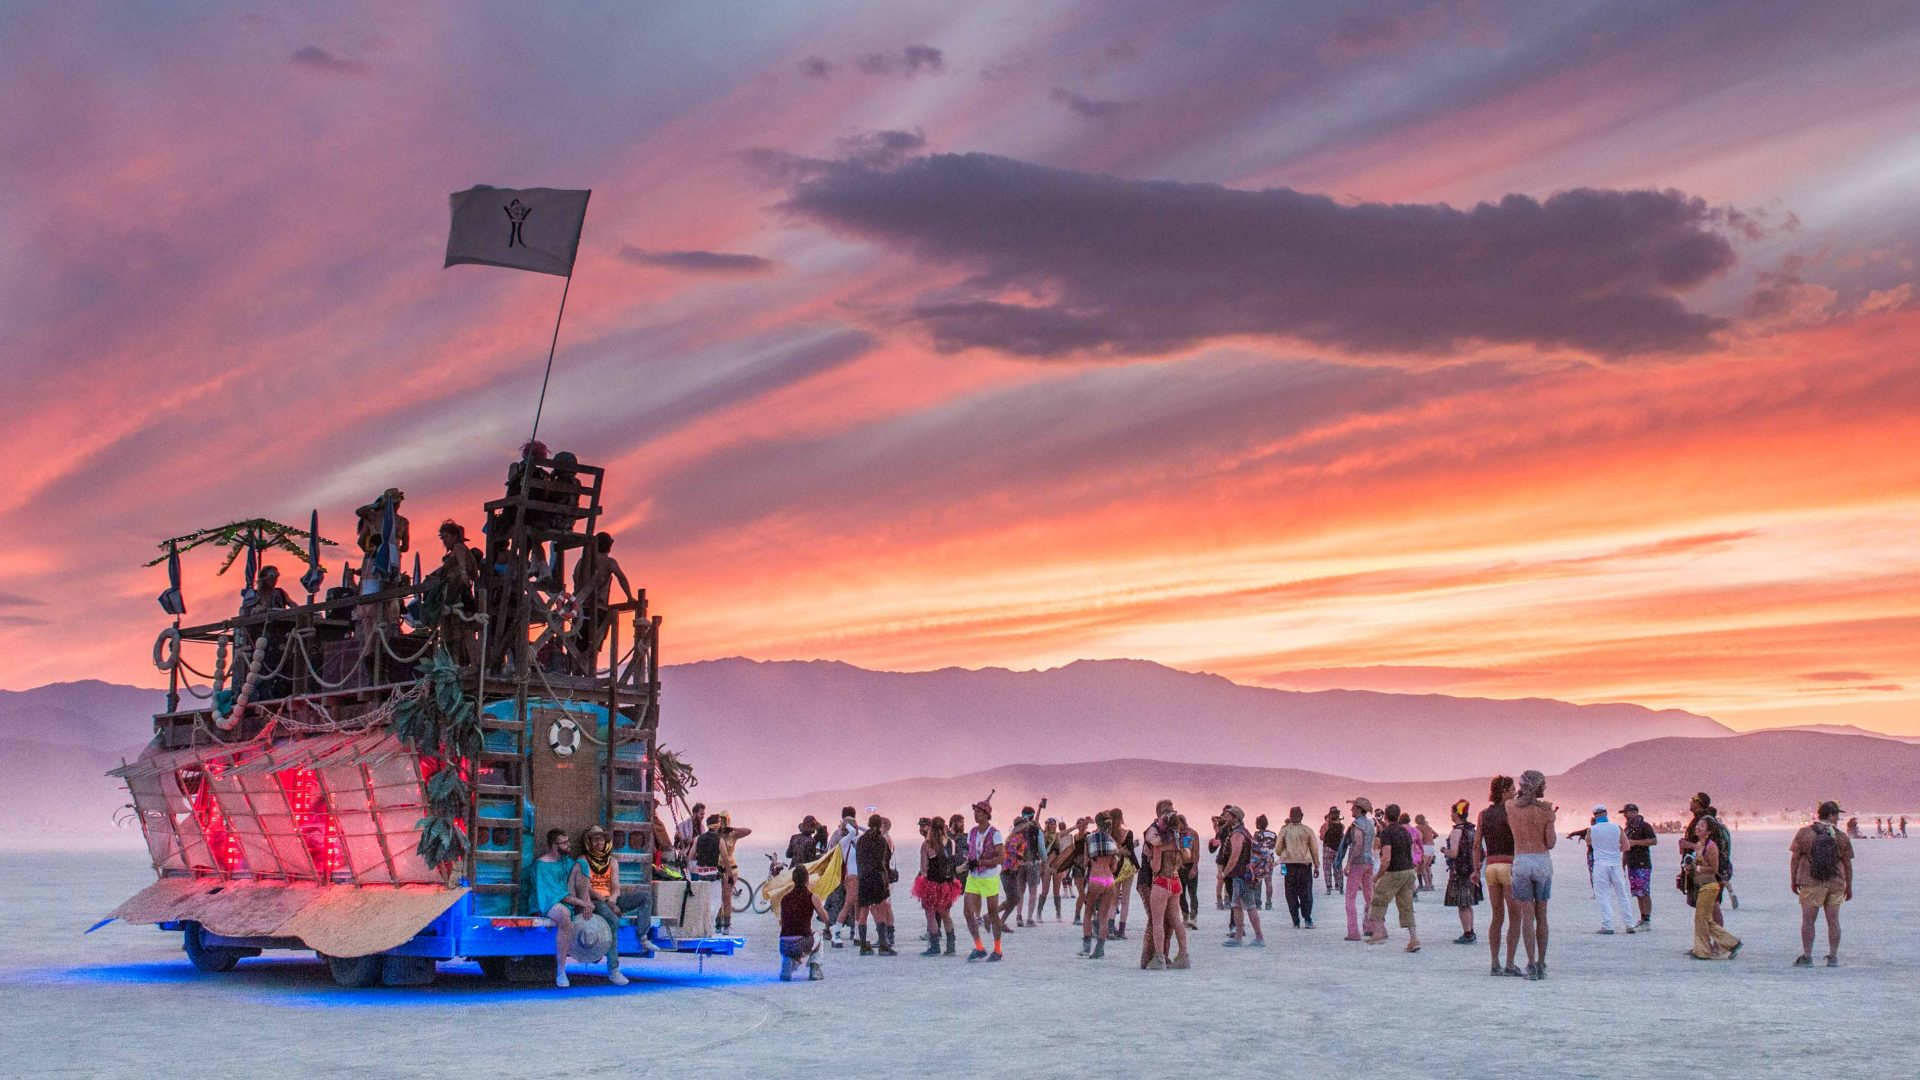 Best Cars For Tall People >> These photos capture the desert utopia of Burning Man ...